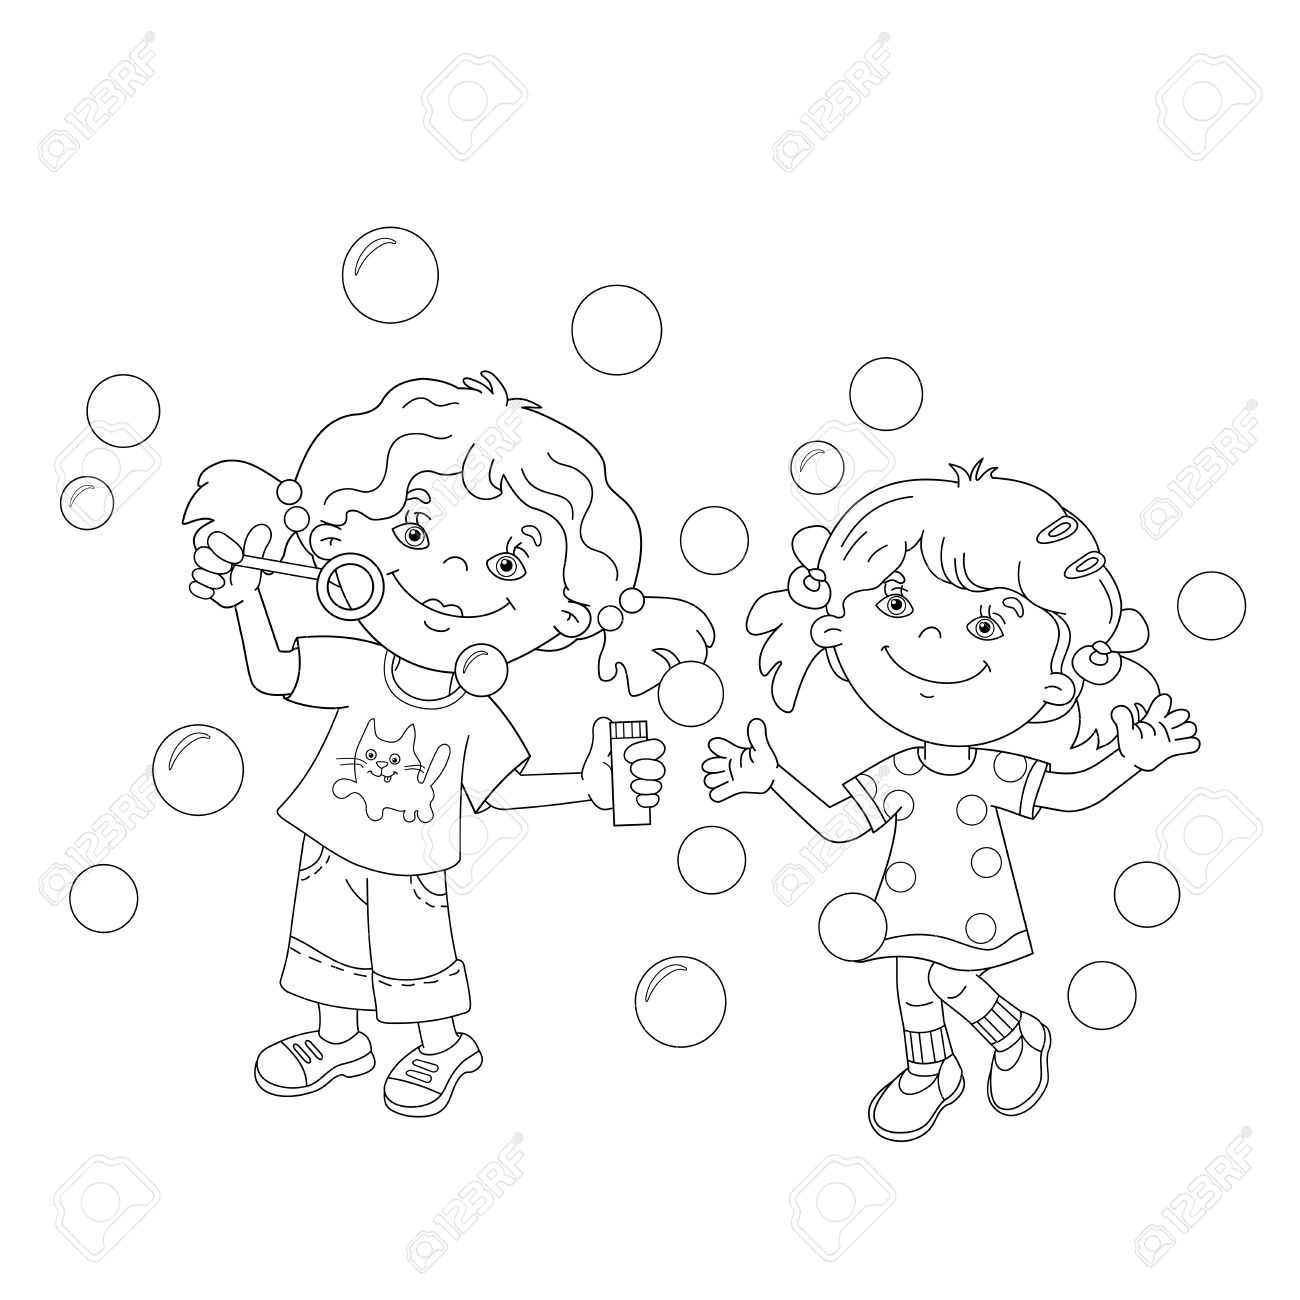 coloring page outline of cartoon girls blowing soap bubbles together coloring book for kids stock